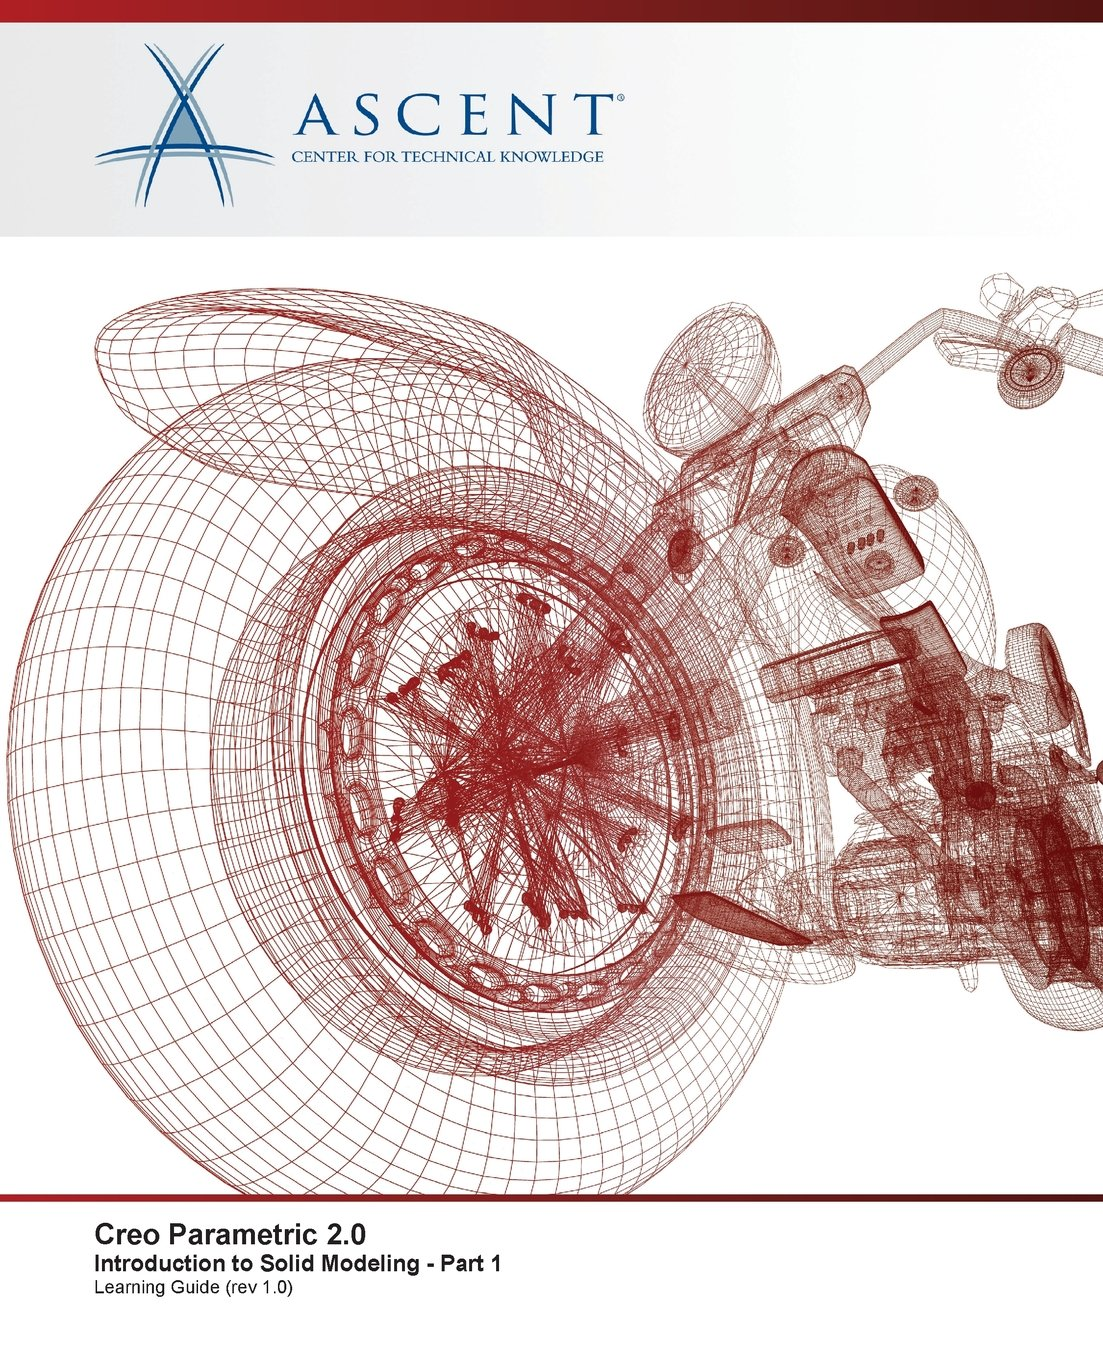 Creo Parametric 2.0: Introduction to Solid Modeling - Part 1 (Volume 1) PDF